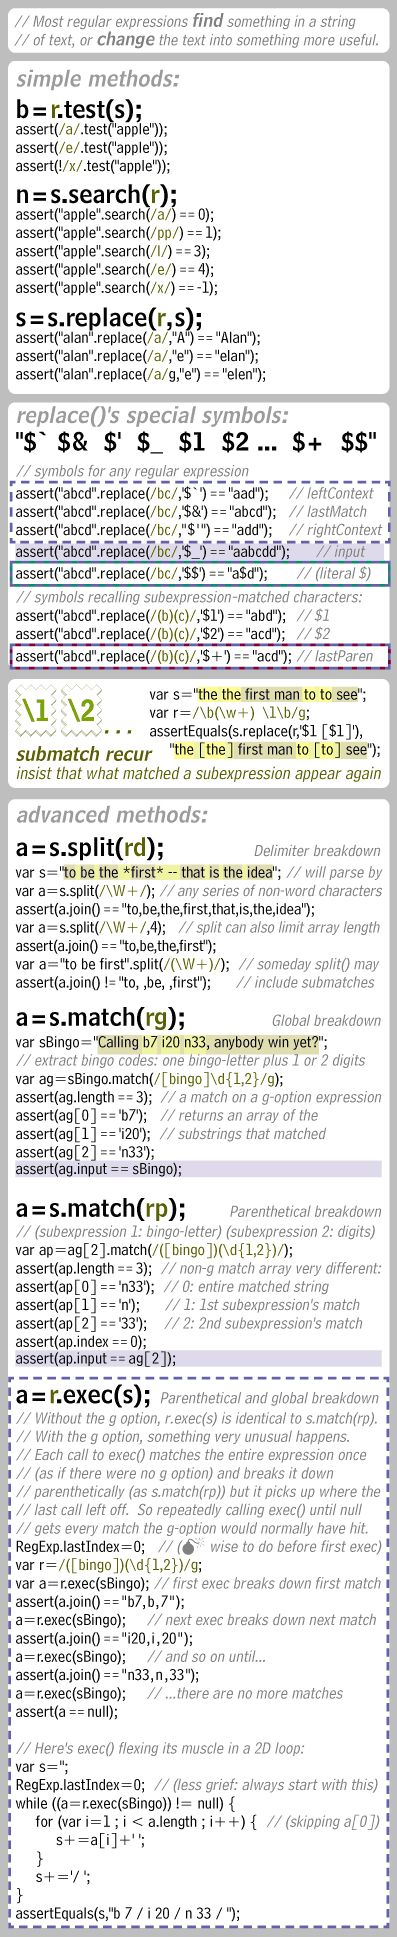 Regular Expressions (column 3 from a page of the JavaScript Card)